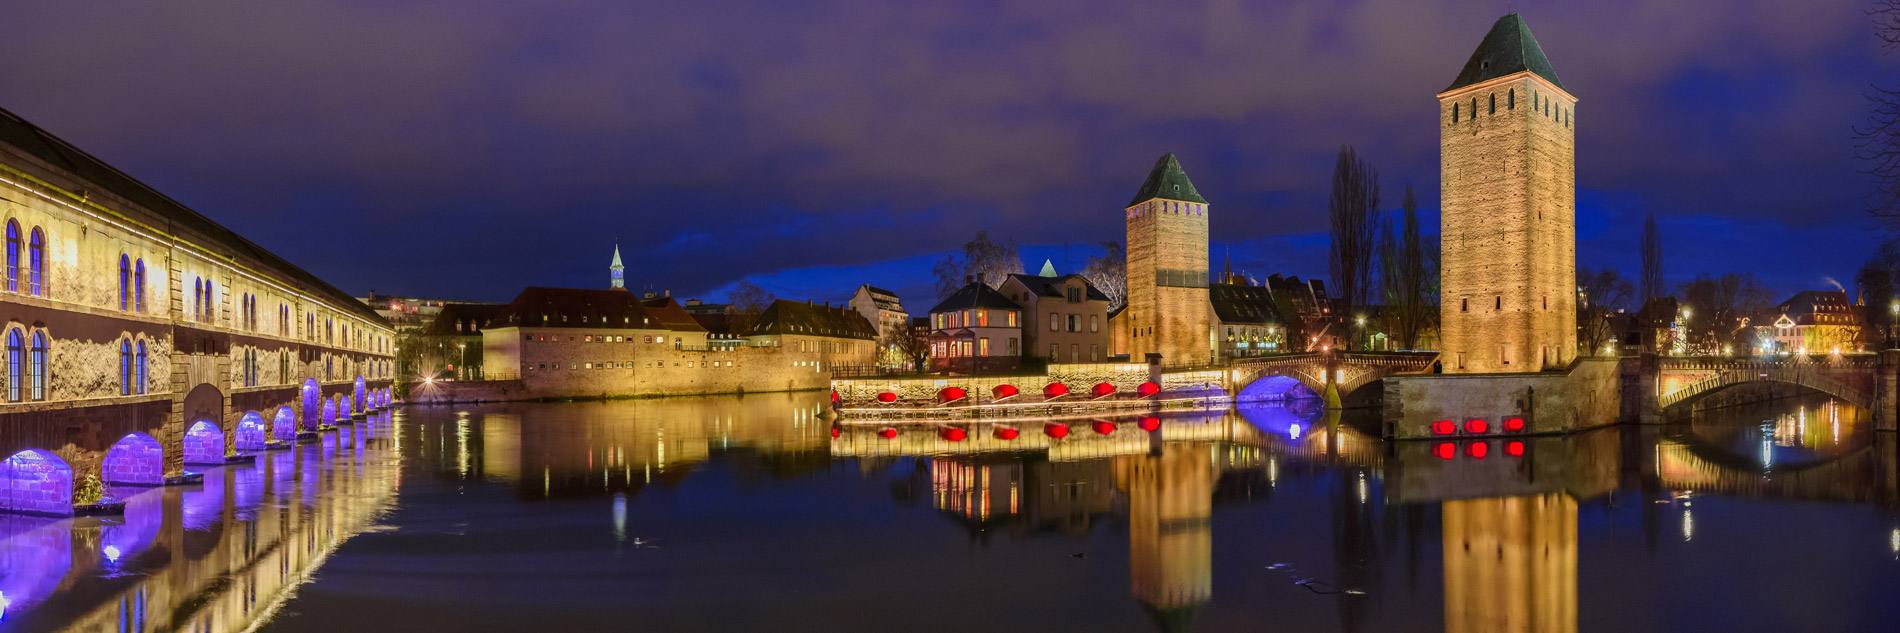 Strasbourg Ponts Couverts